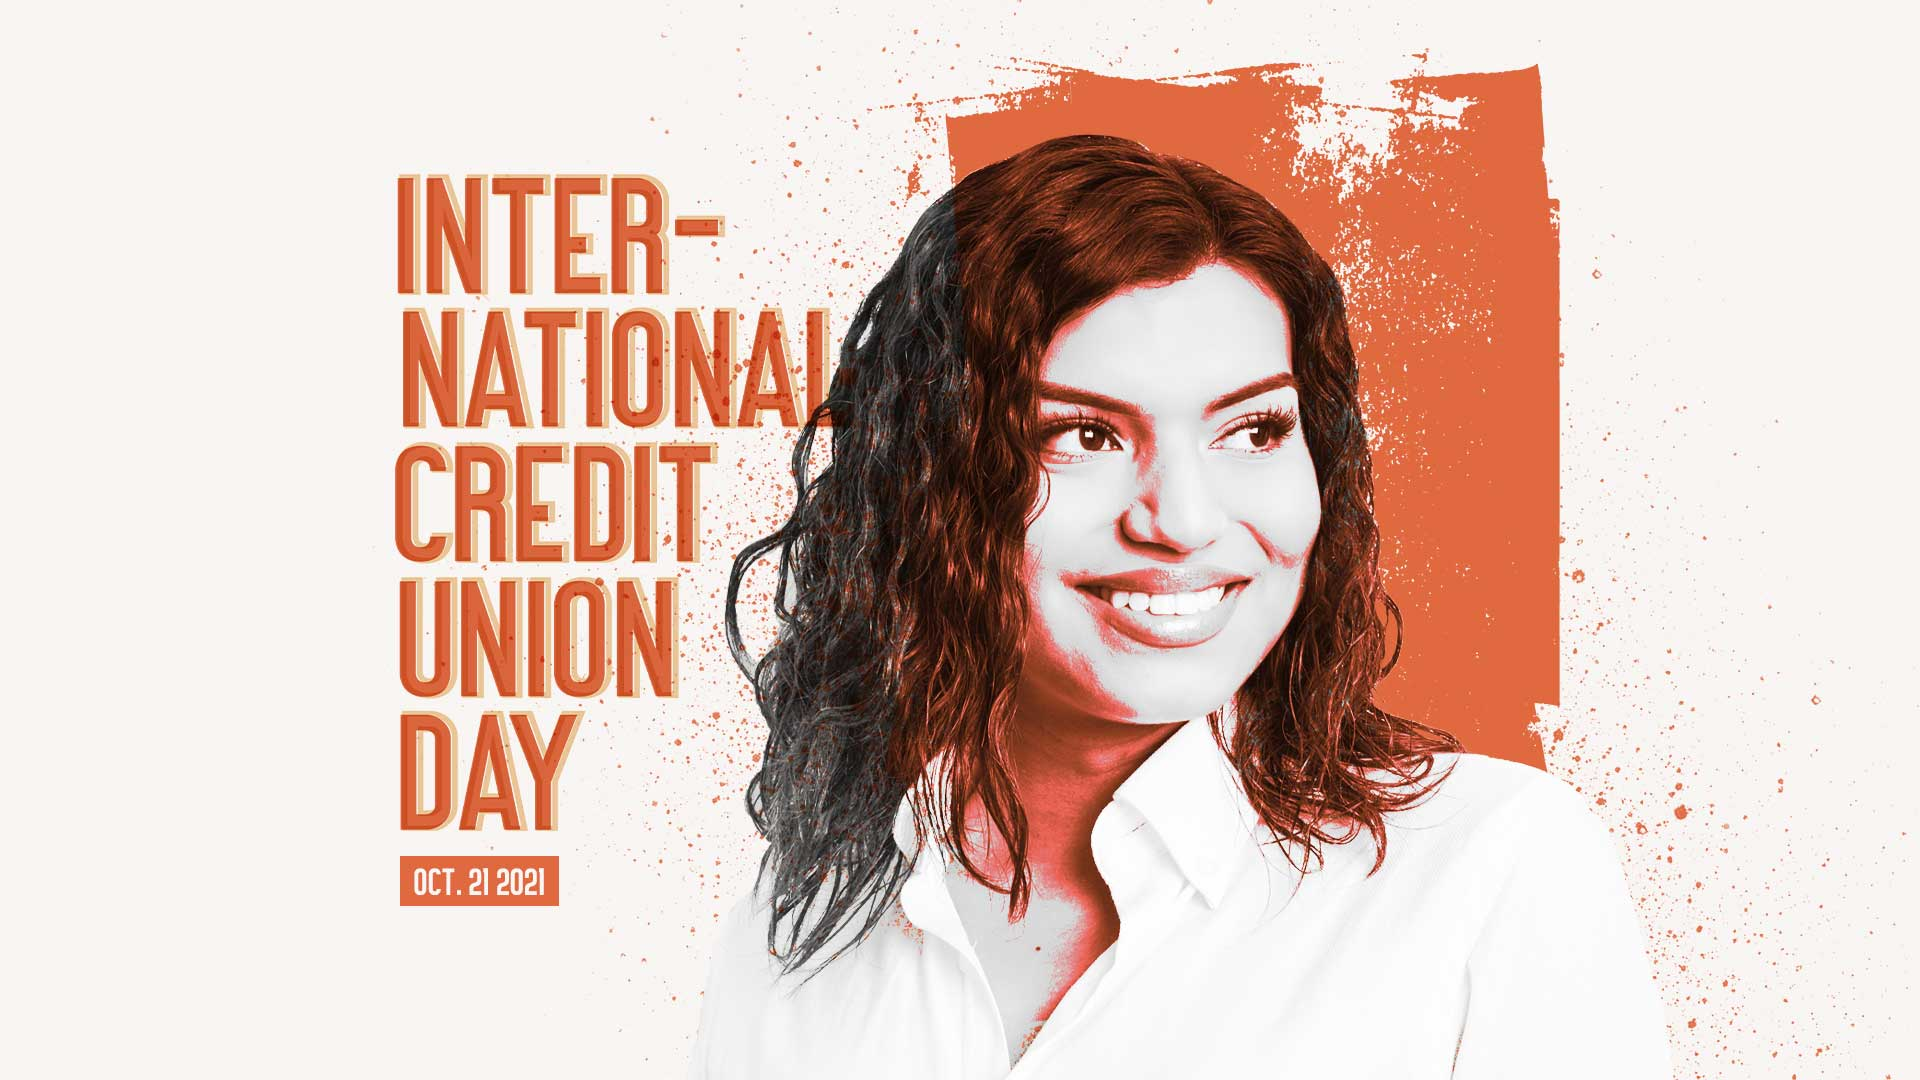 Credit Unions Care About You! We say that a lot because we really want to get the point across that being a member of a credit union gives you a whole community focused on your needs. International Credit Union Day is another chance to connect and celebrate with our members for the positive impact we have when we understand that we're better together!